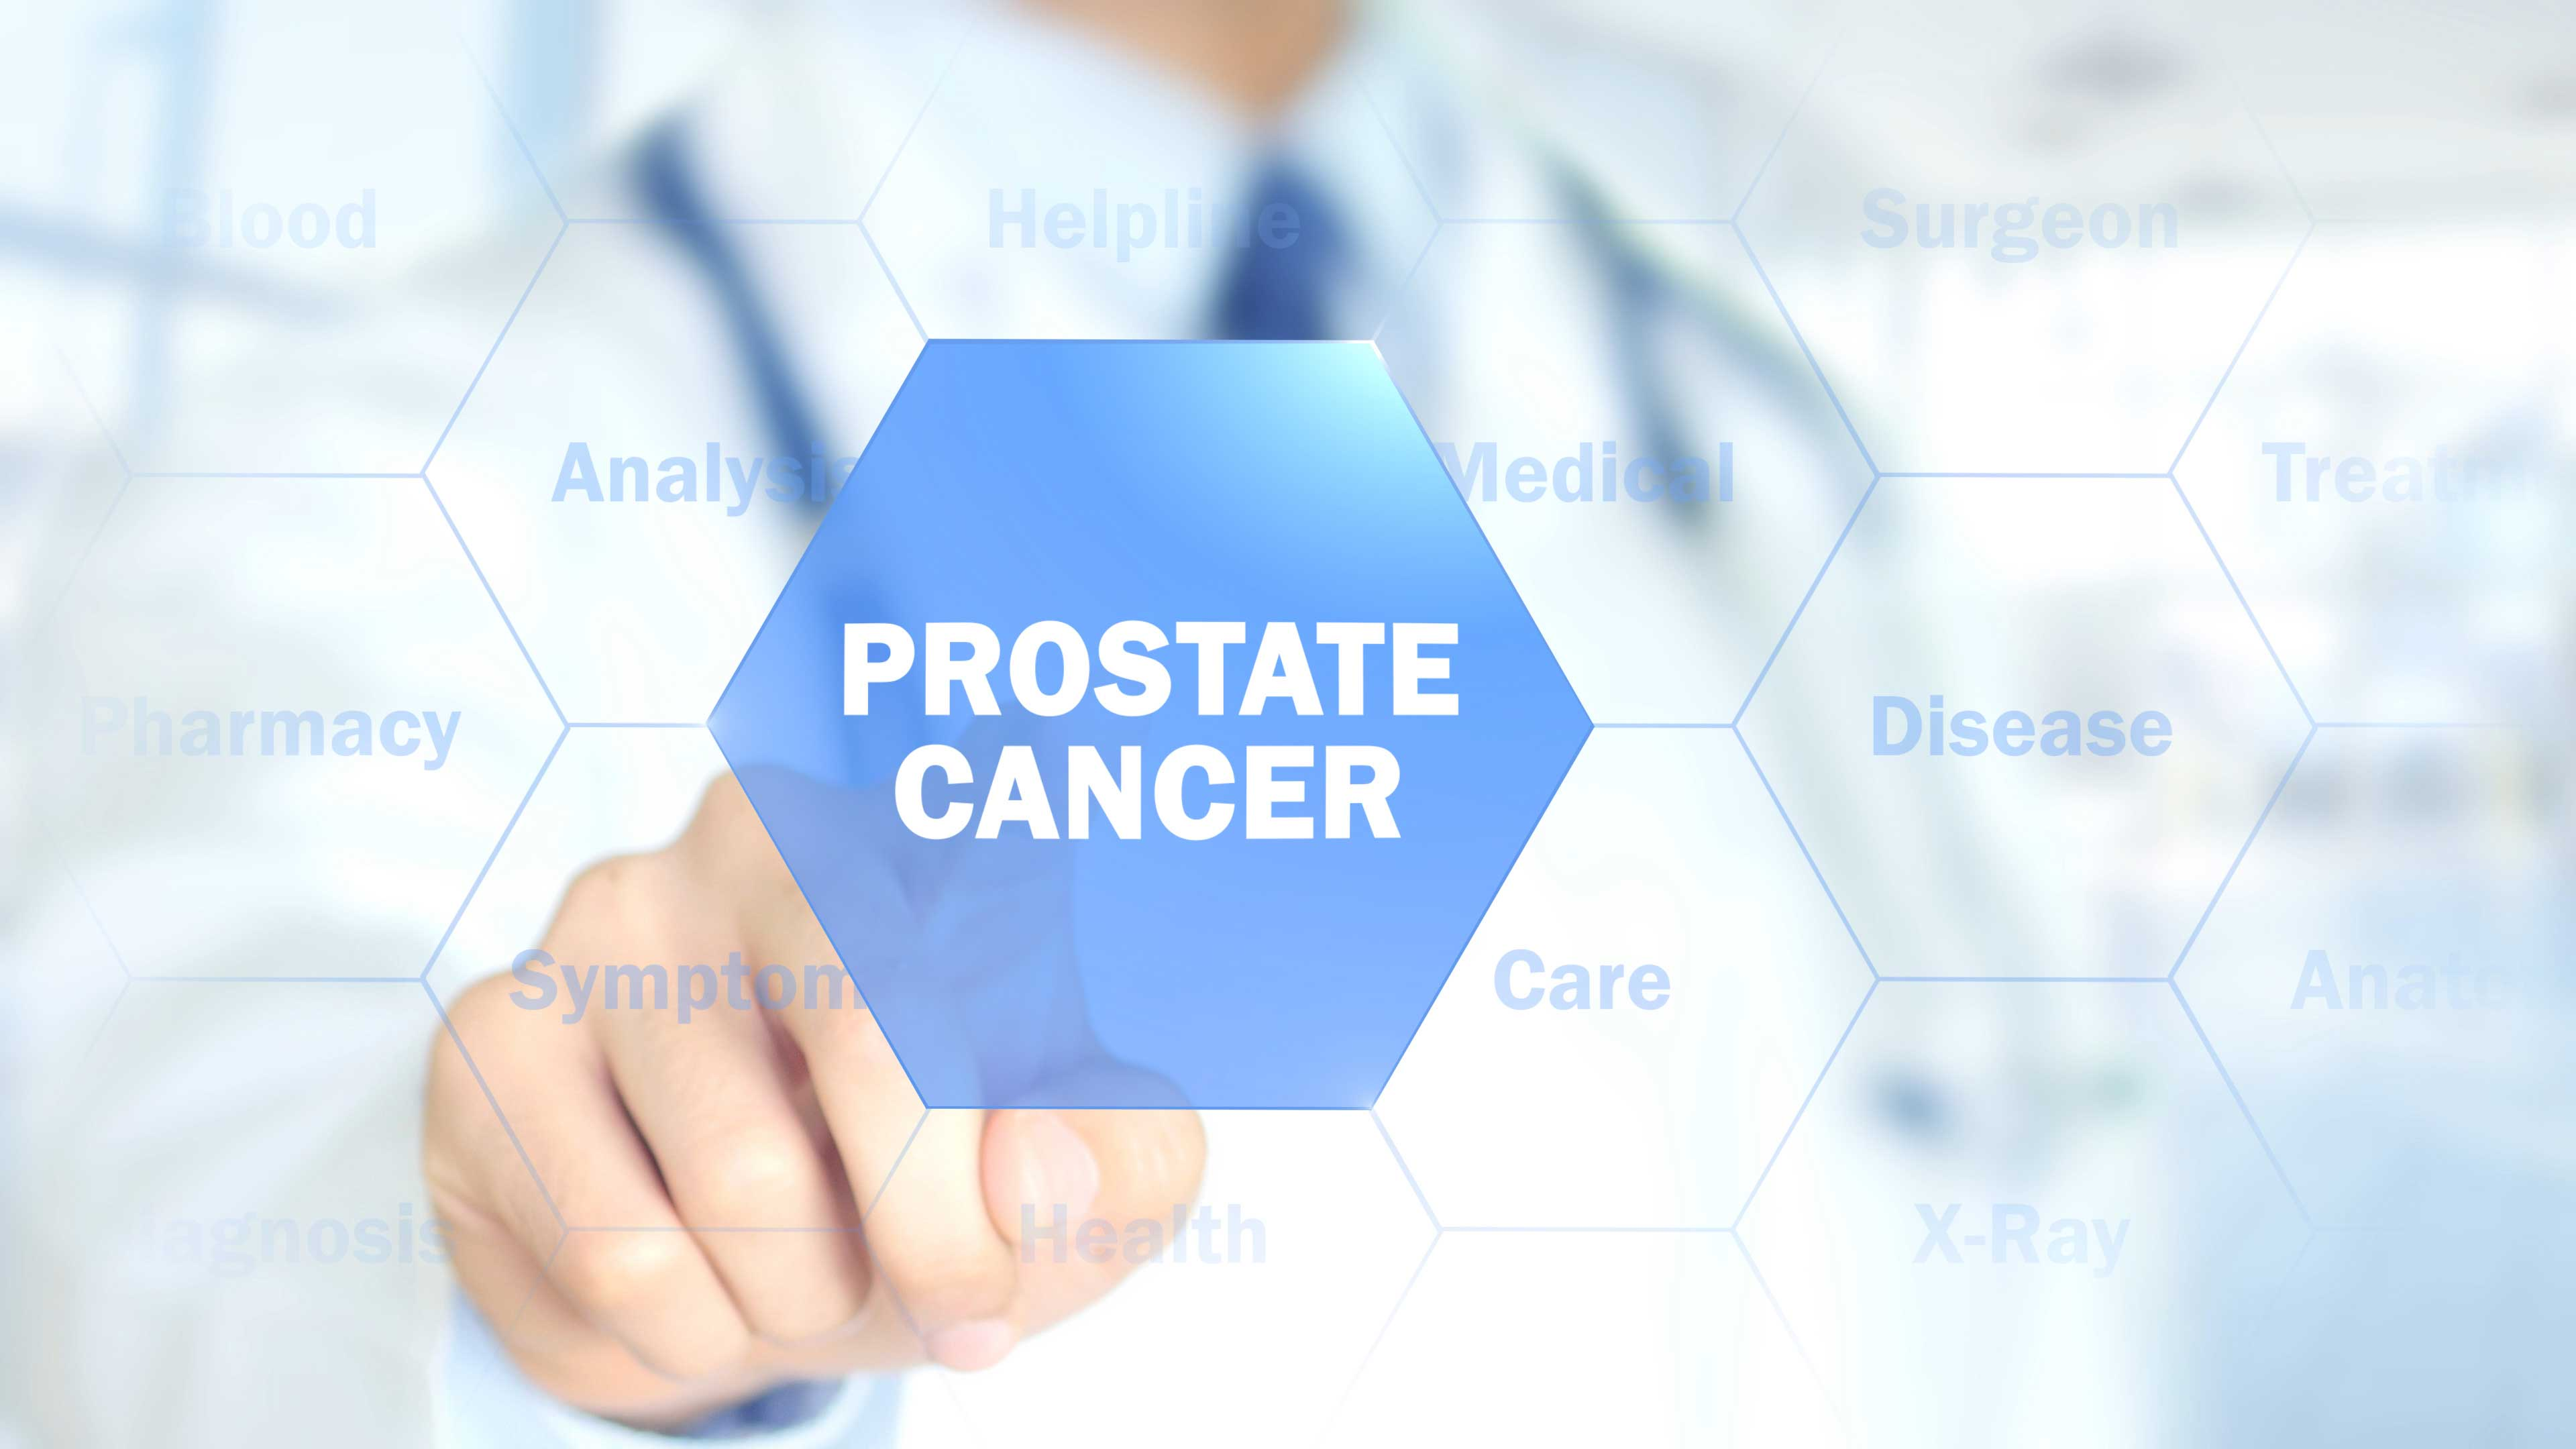 Prostate Cancer, Symptoms, Causes, Treatment, and Prevention